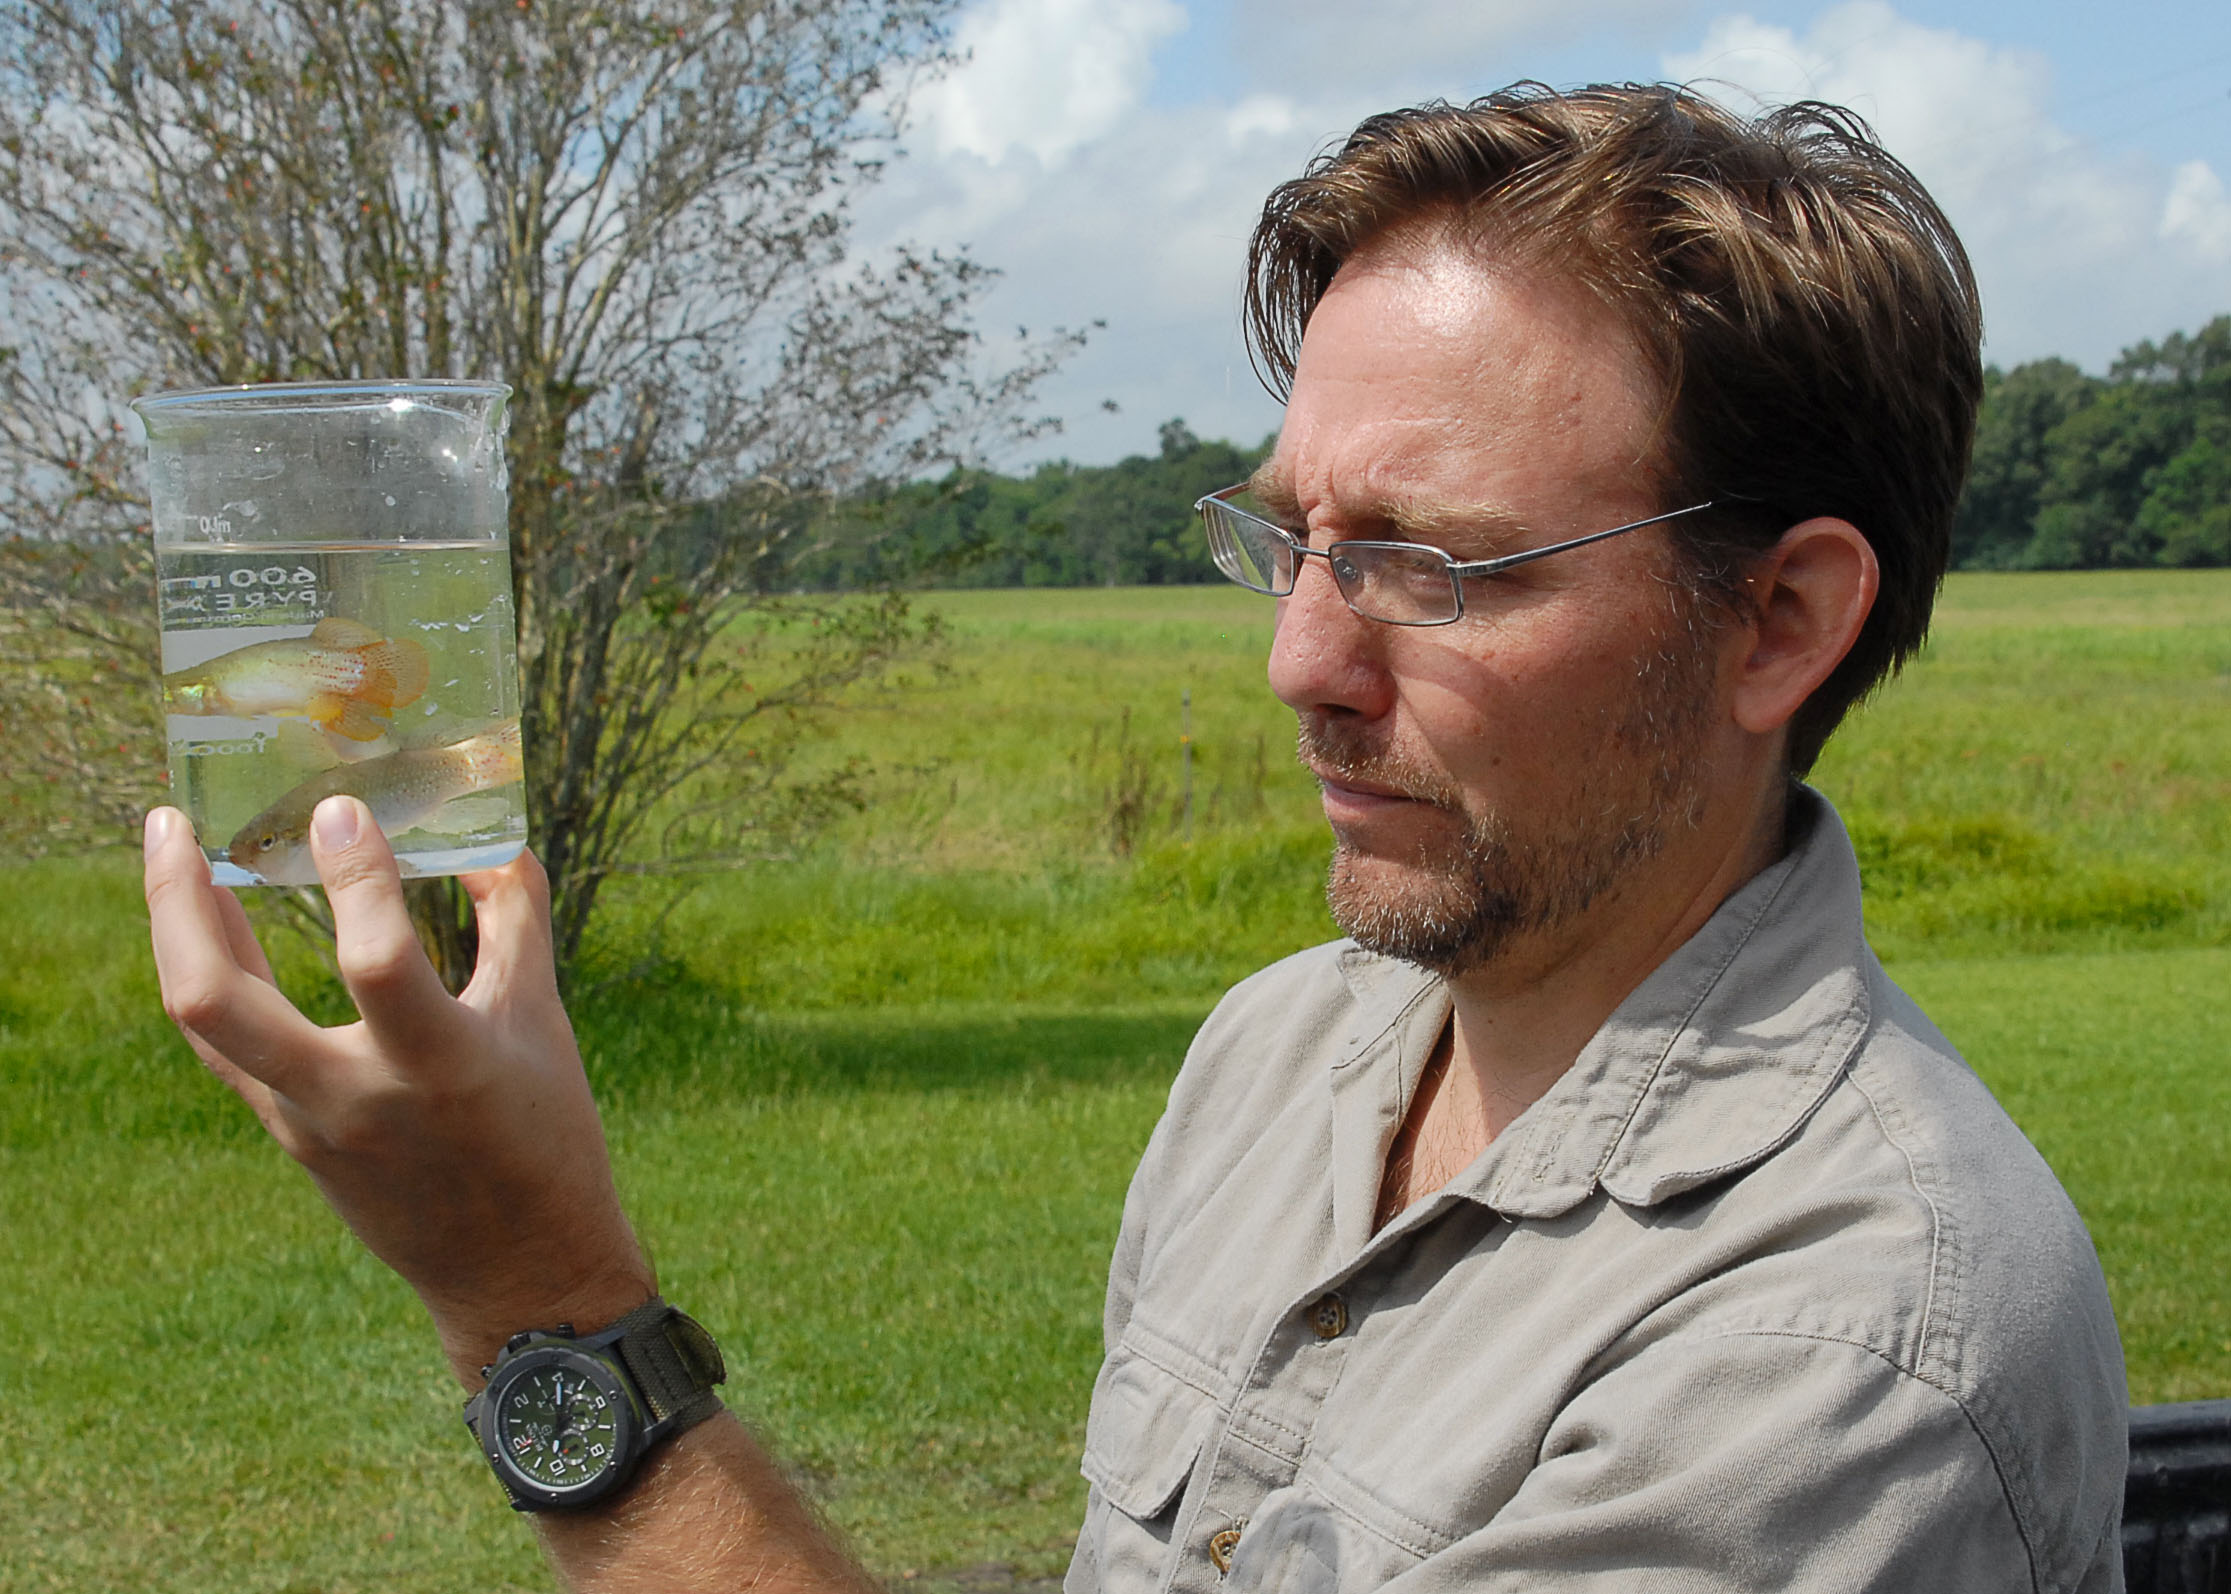 LSU AgCenter researcher looks to improve rearing of aquarium fish